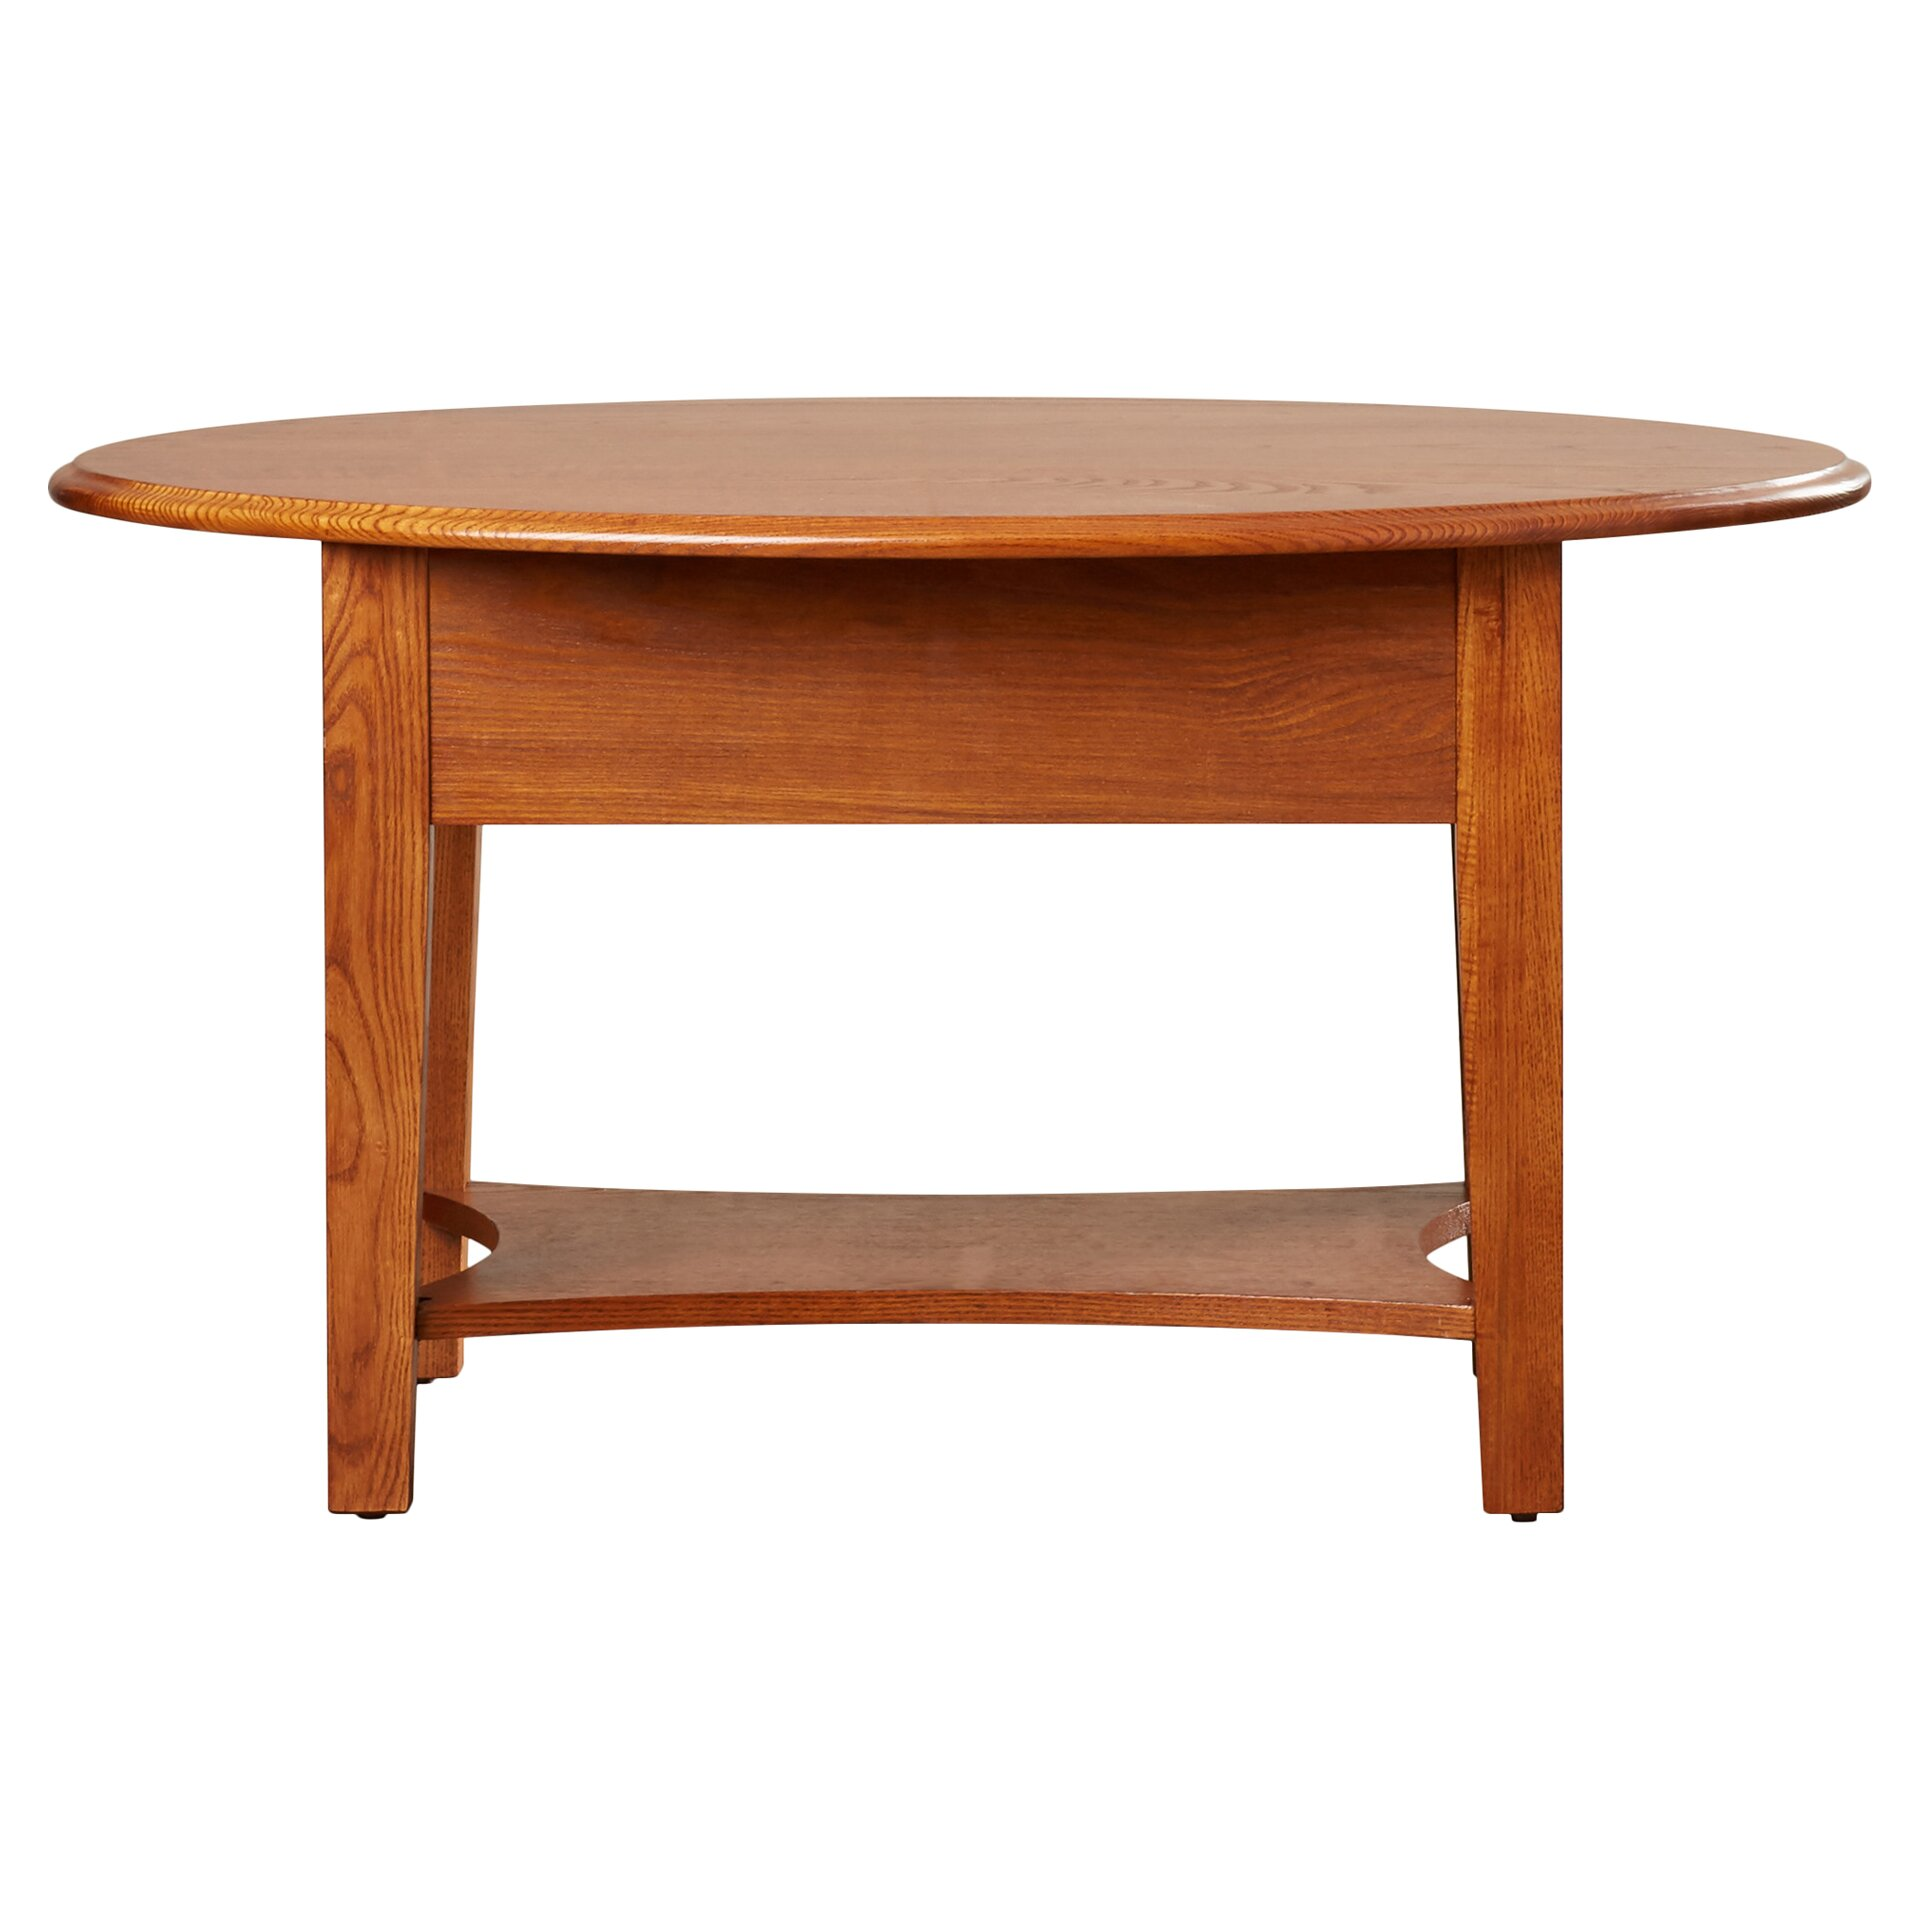 Apple valley oval coffee table wayfair for Wayfair oval coffee table